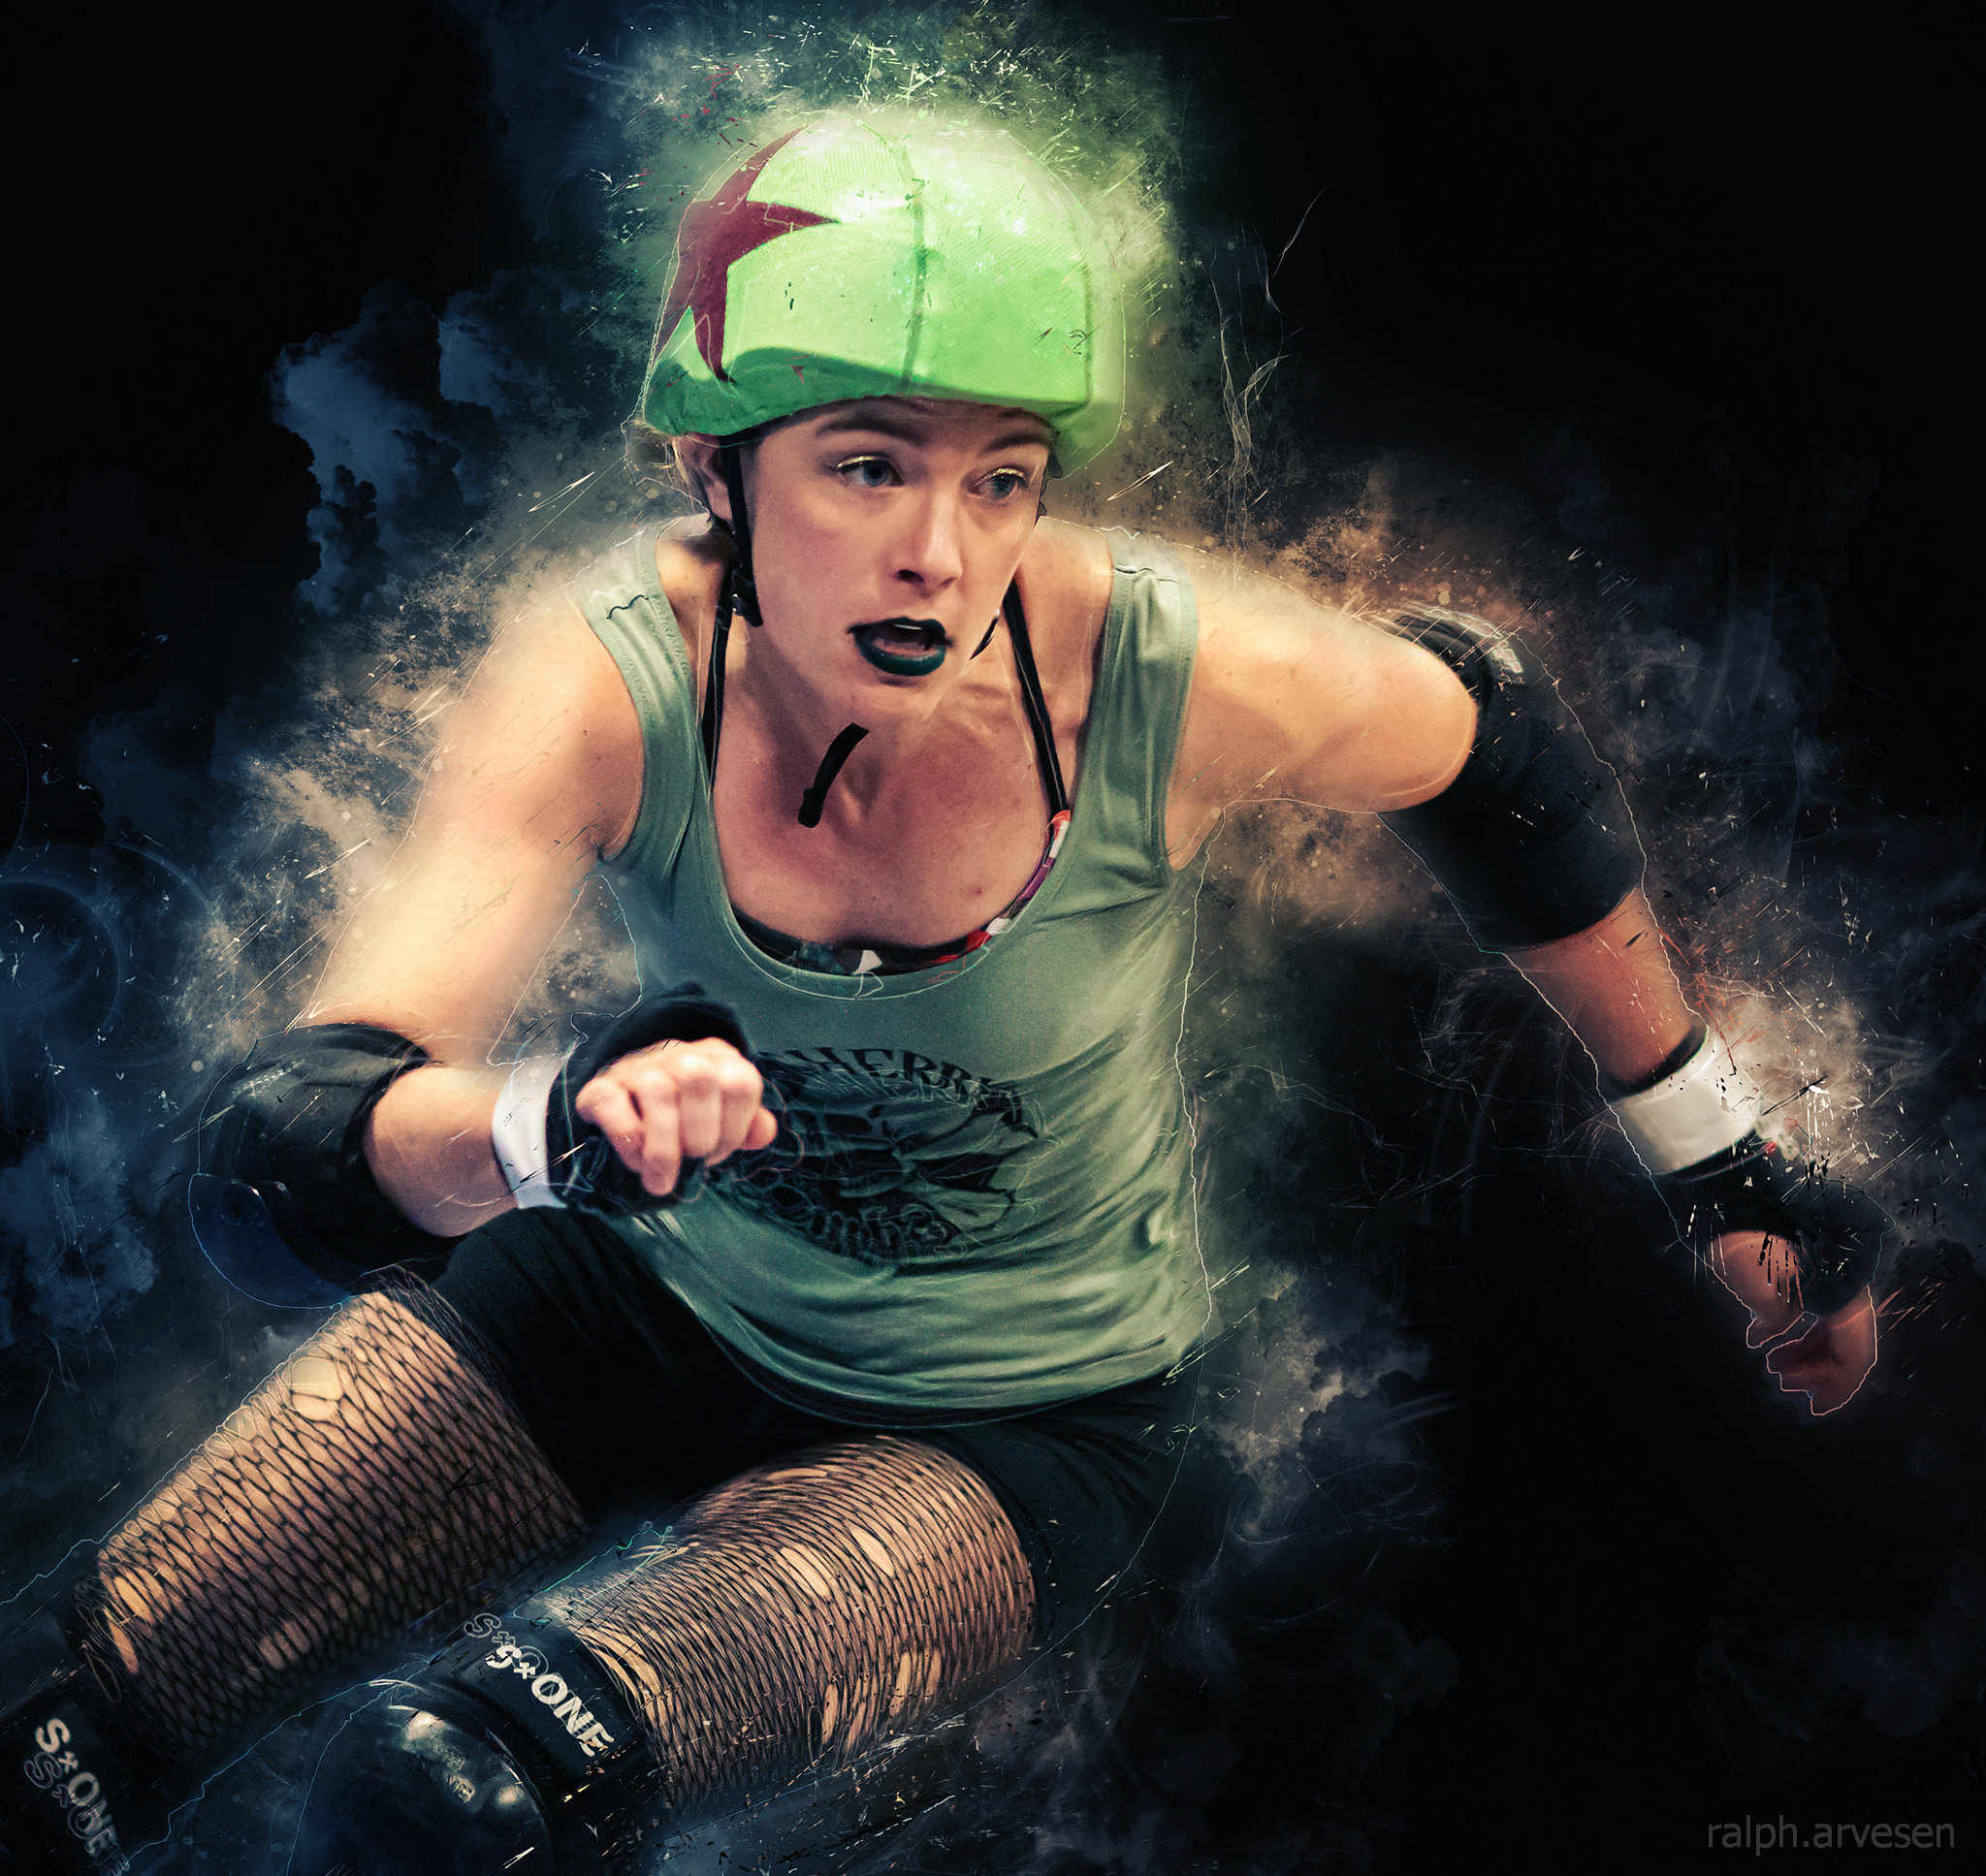 Texas Roller Derby bout | Texas Review | Ralph Arvesen